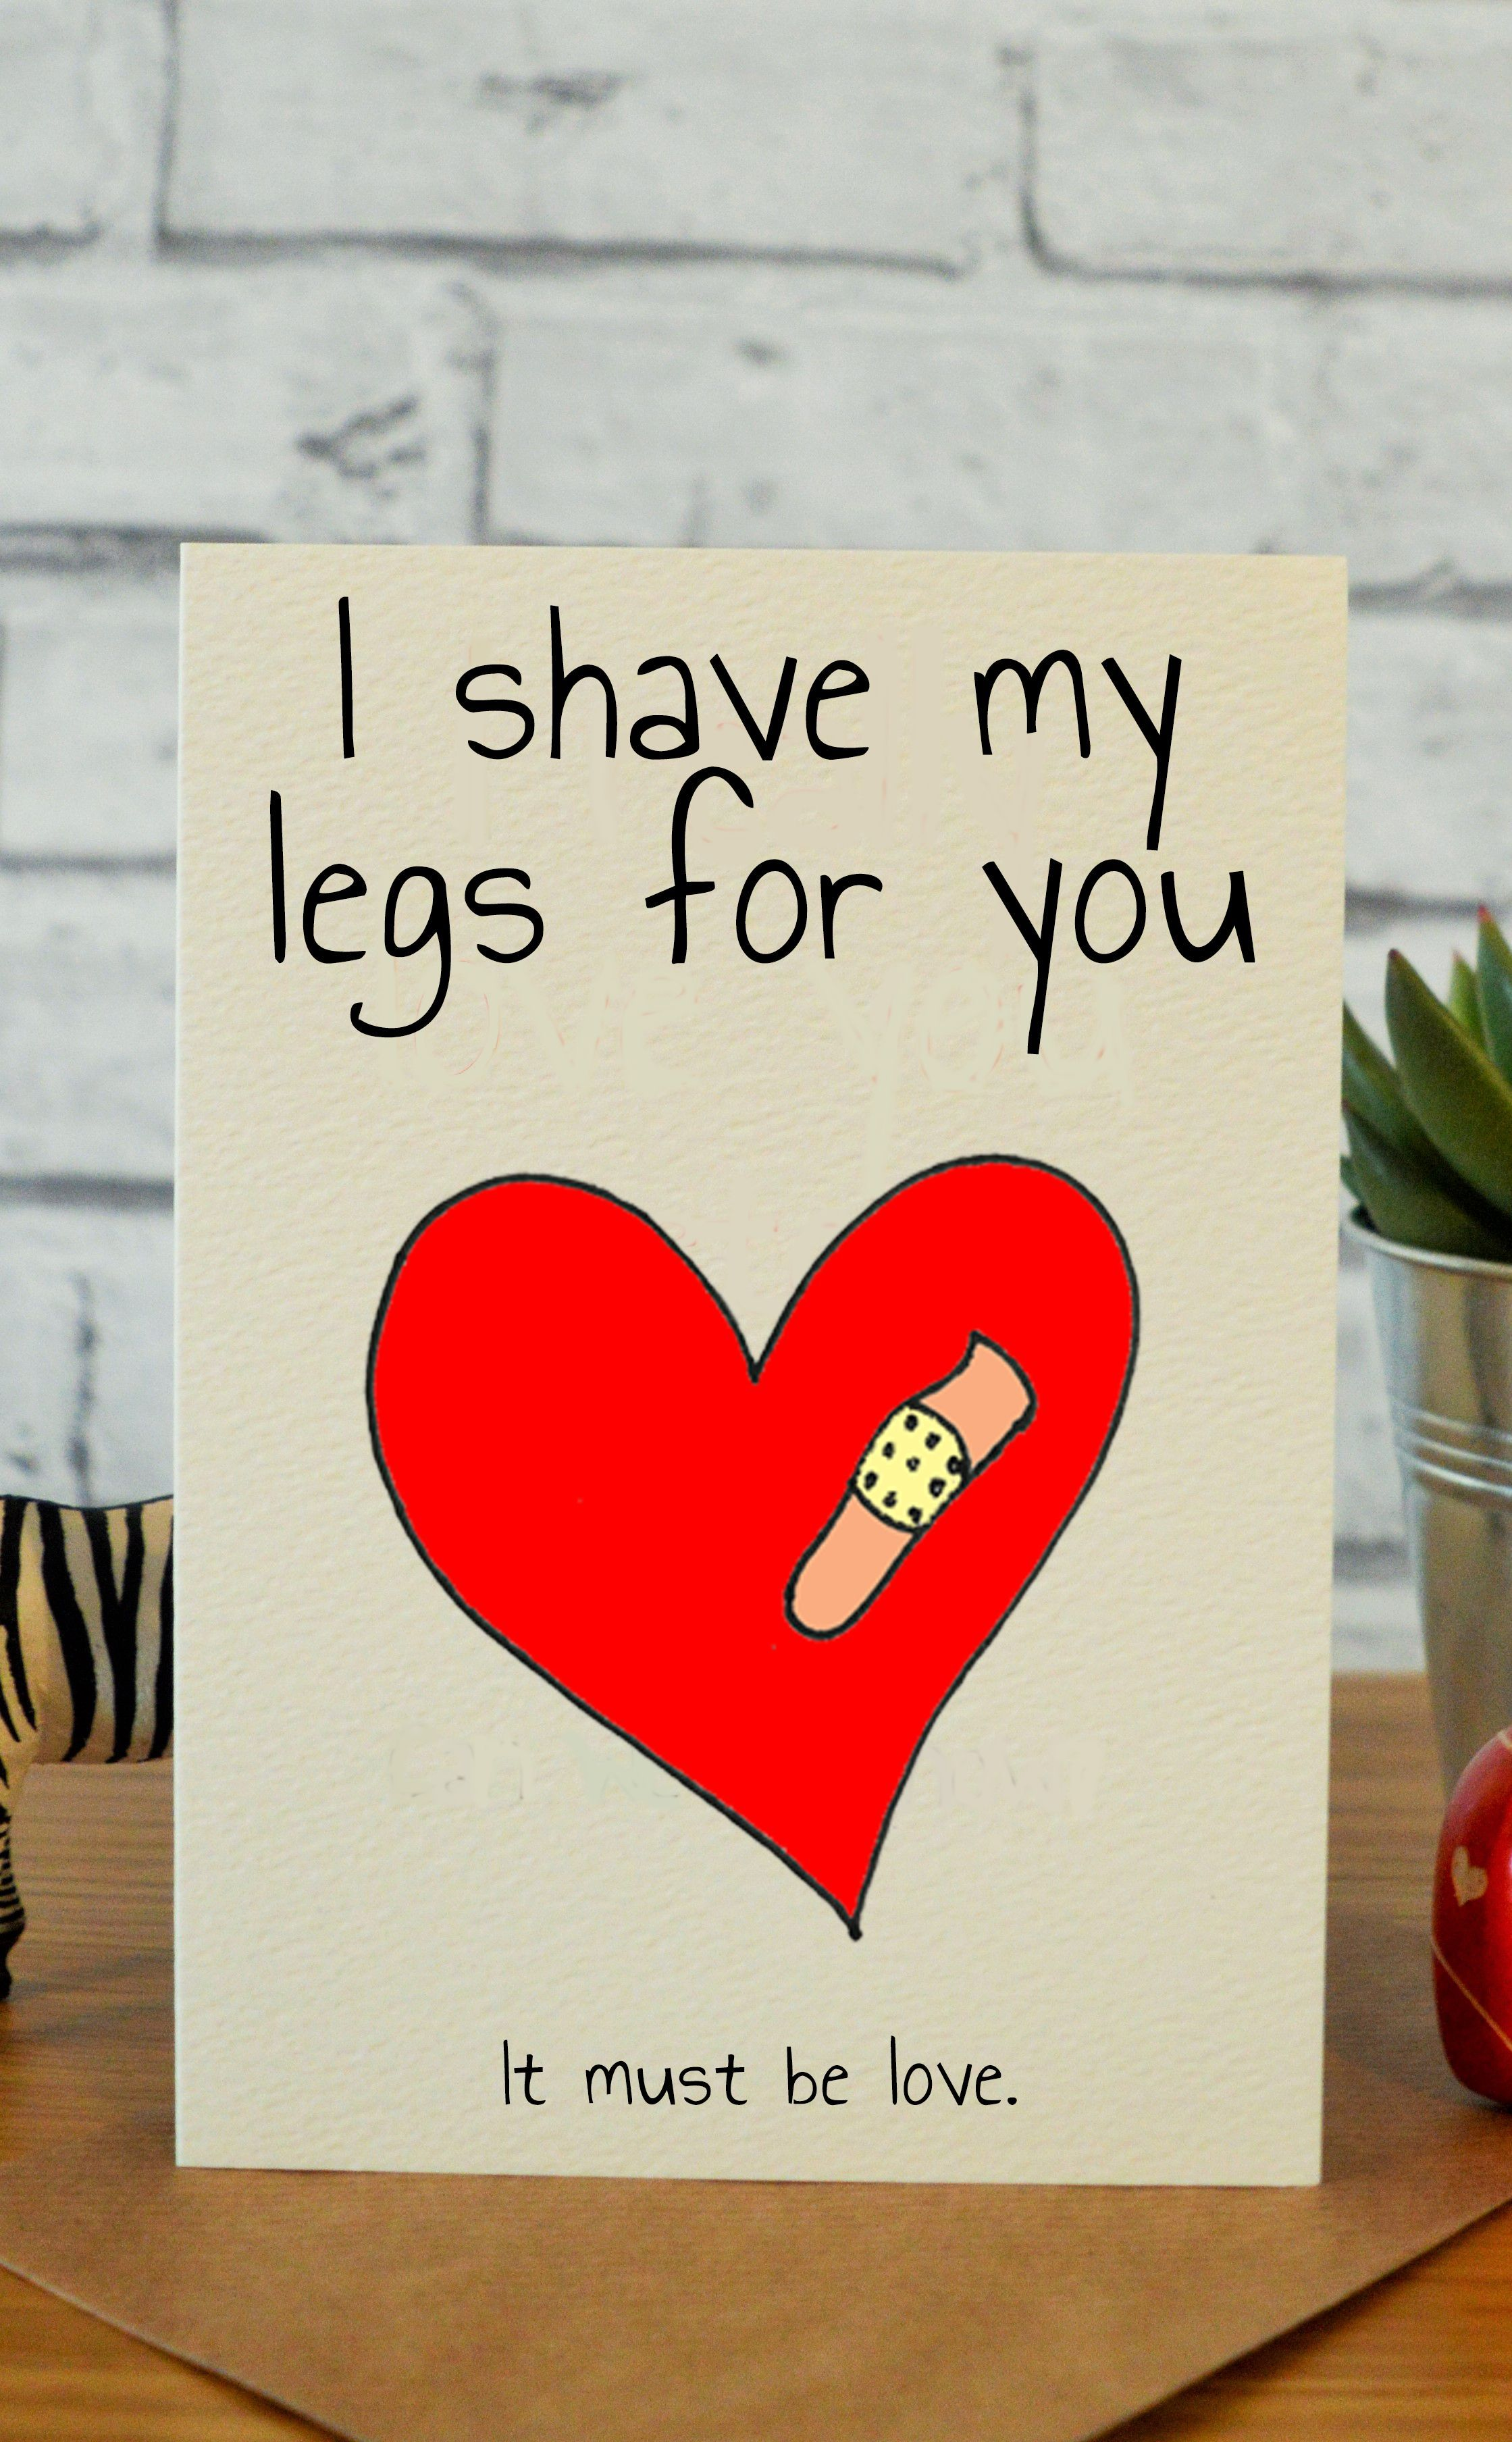 Funny anniversary cards, funny valentines day cards